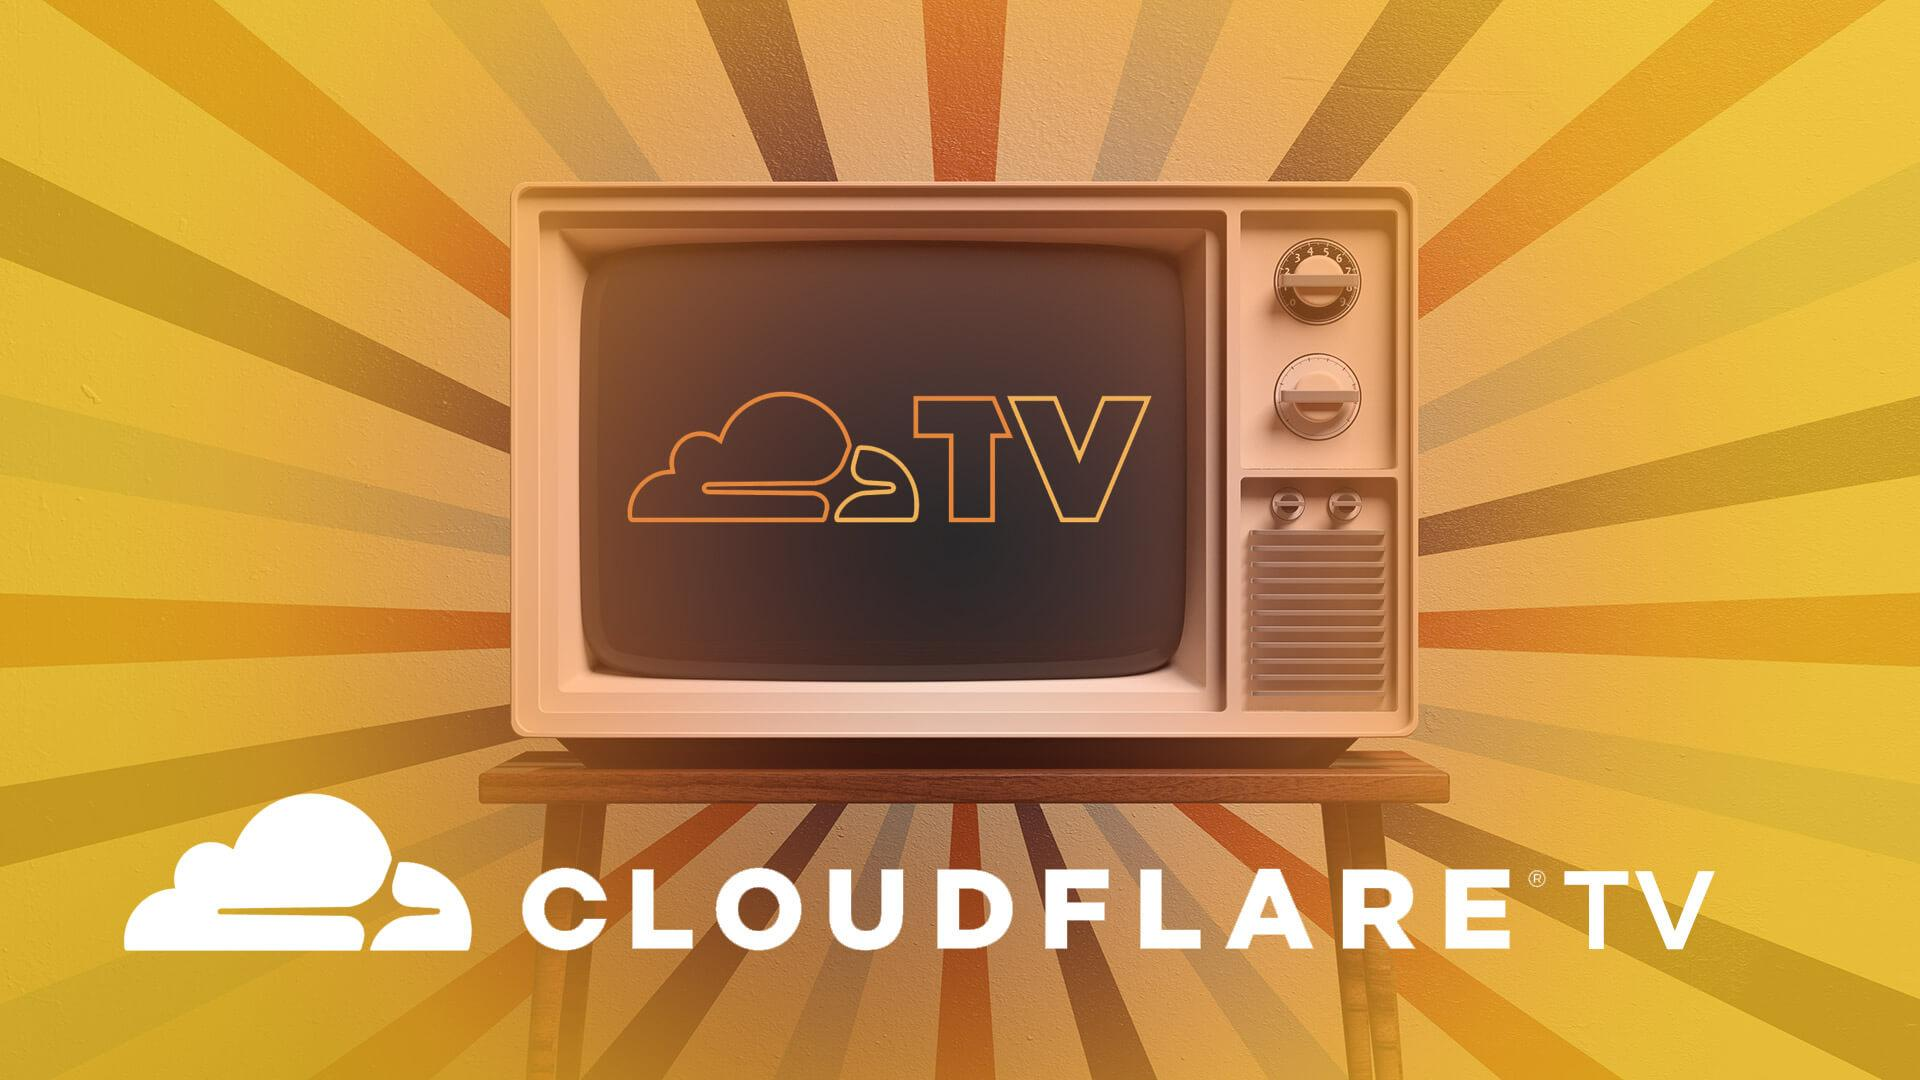 Cloudflare TV